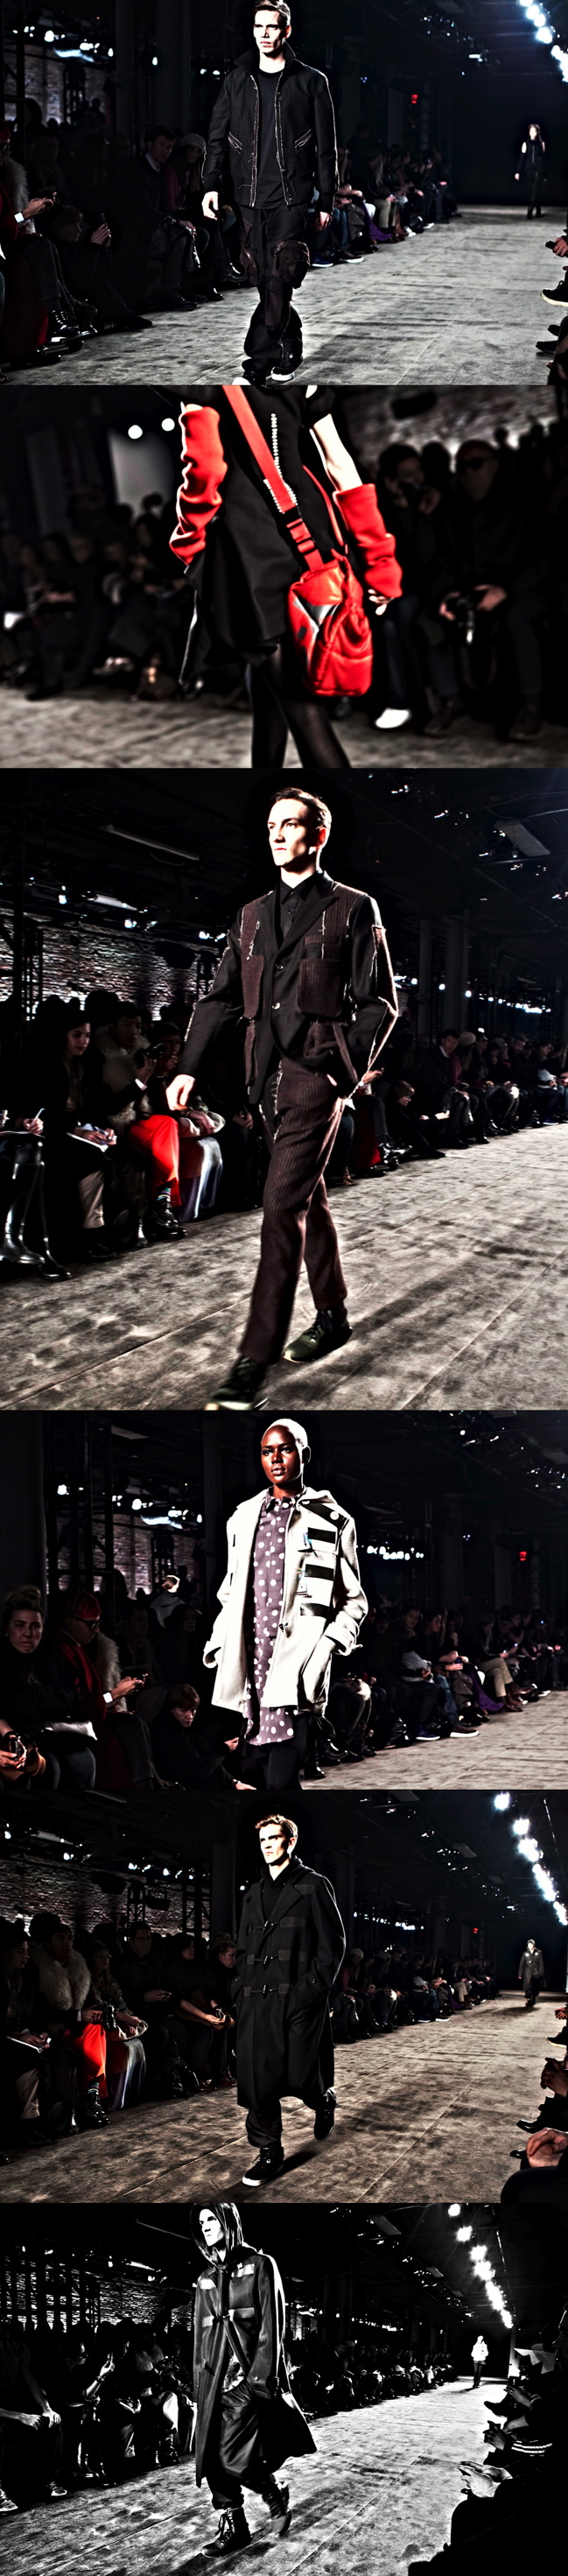 Y-3 Fall/Winter 2011/'12 New York Fashion Week